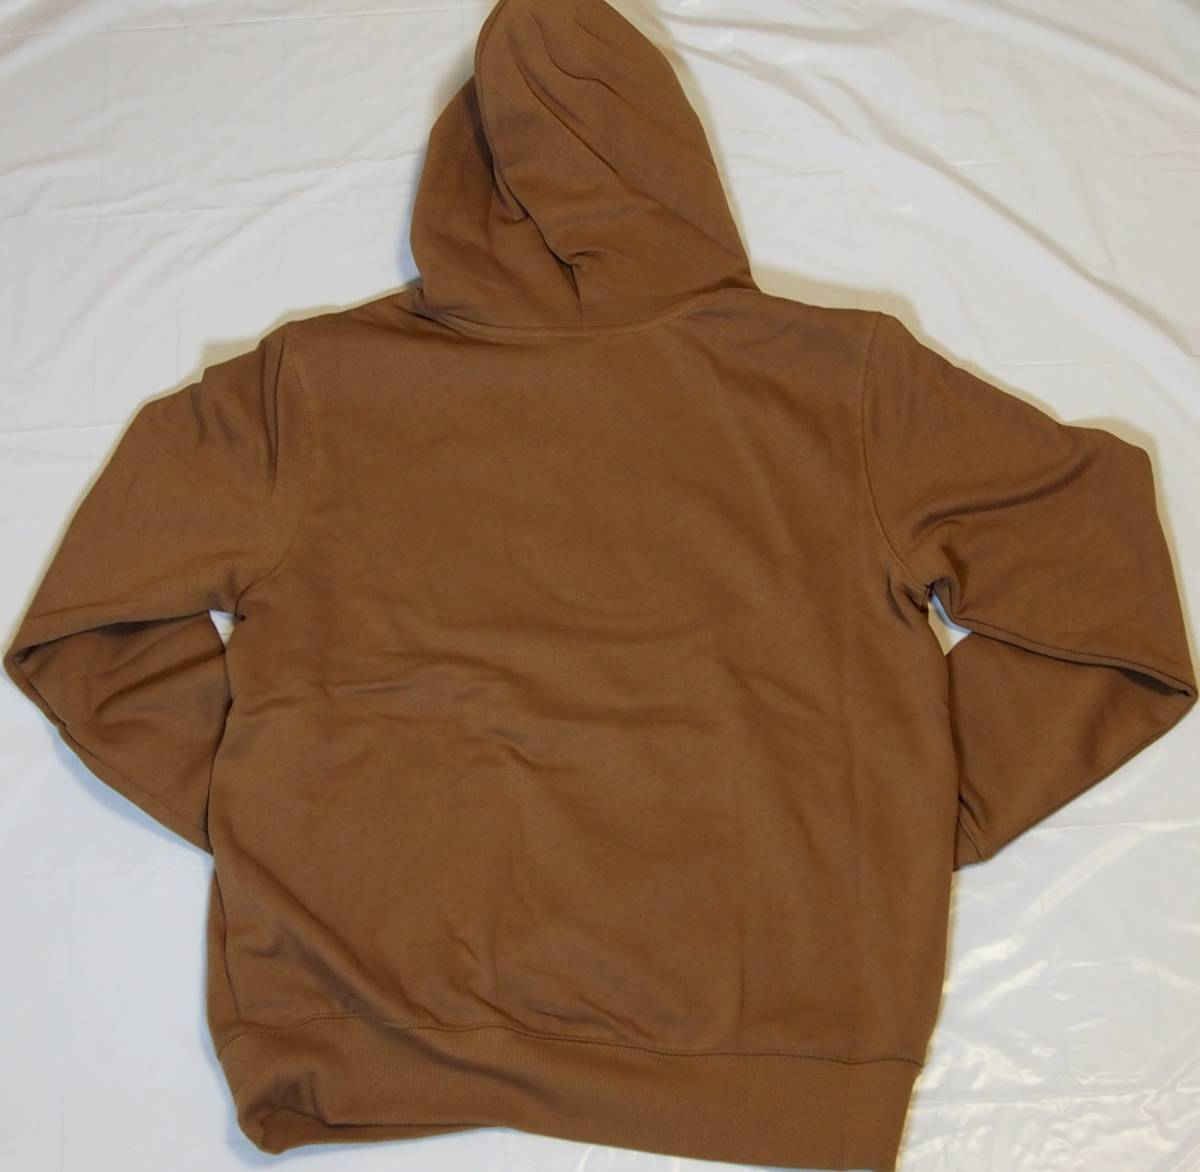 【USA購入、未使用タグ付】ノースフェイス メンズ パーカー Mサイズ ブラウン The North Face Boxed In Pullover Hoodie_画像3